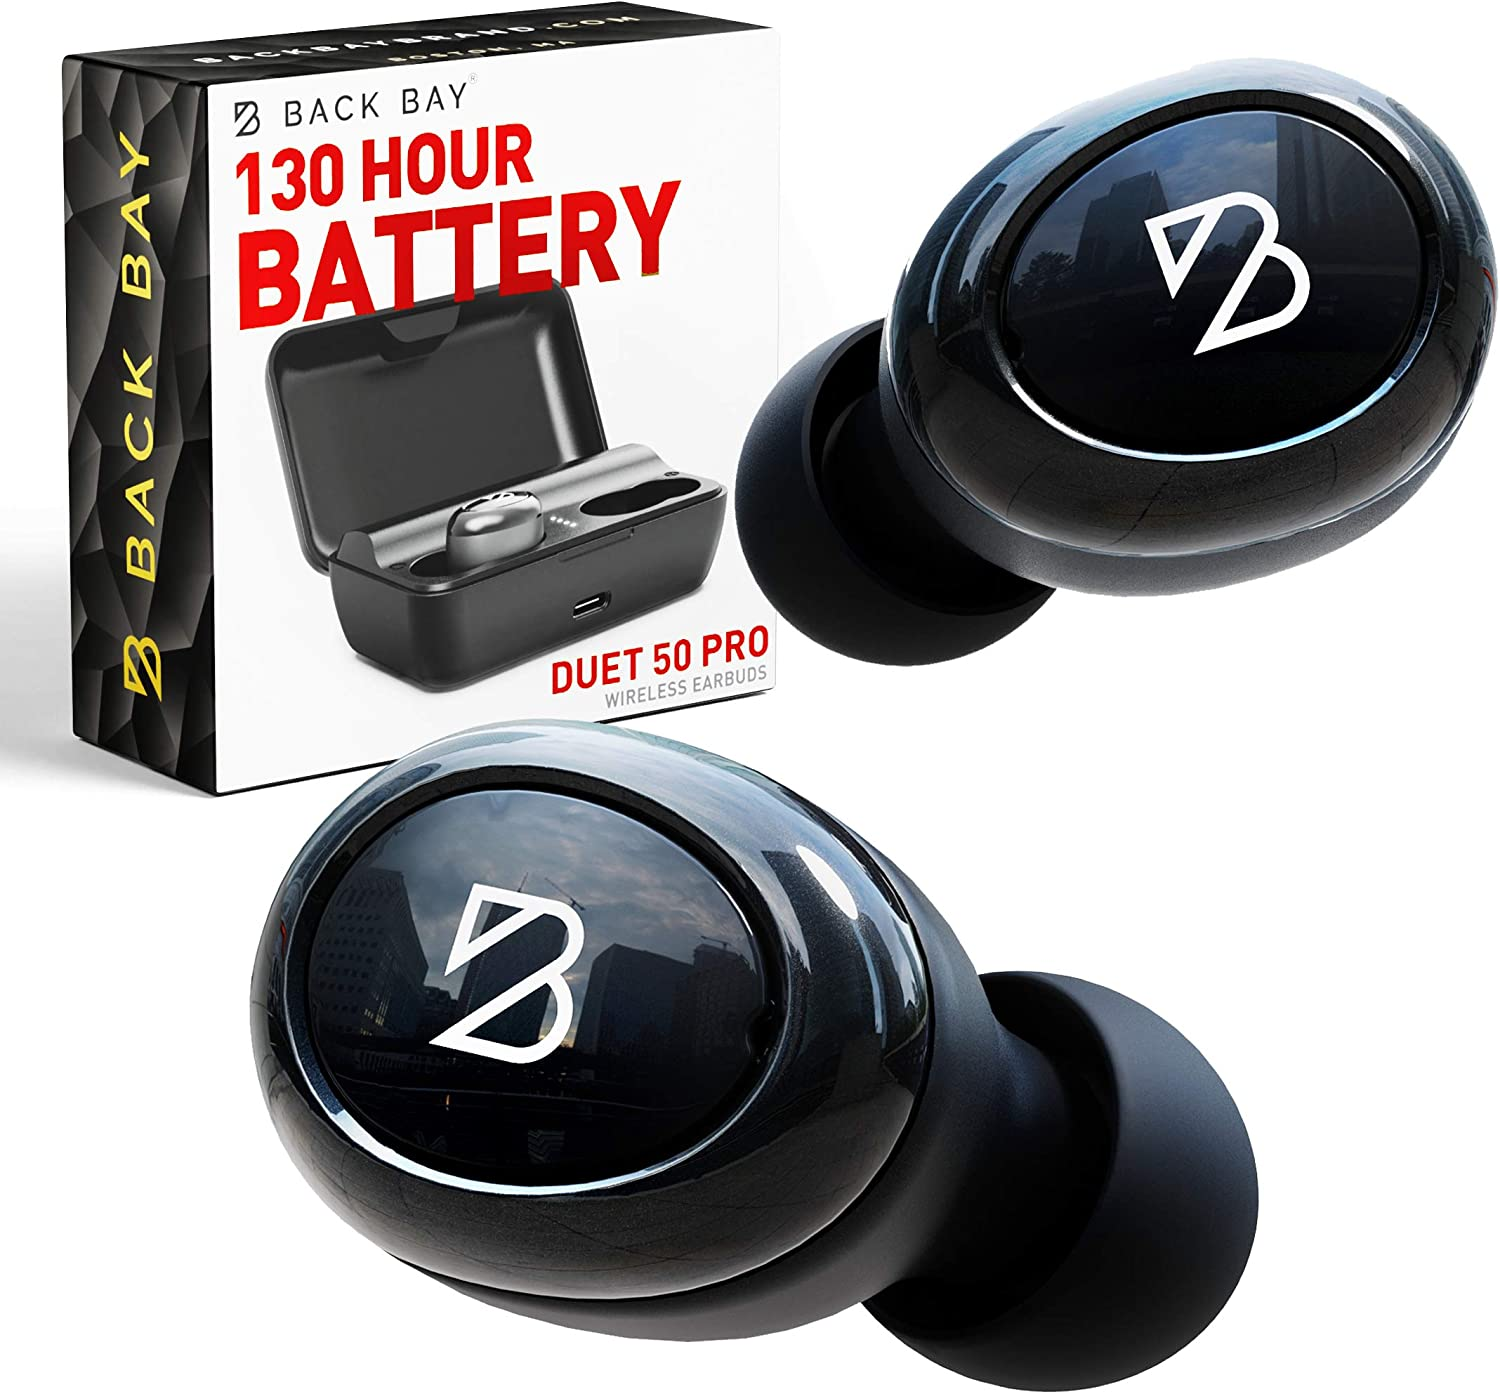 Duet 50 Pro - Wireless Bluetooth Earbuds. 130 Hour Long Battery Life for iPhone, Android. [Featured in Forbes] Phone Charger Mini Power Bank Case, Sweatproof TWS Headphones. aptX Sound for Running